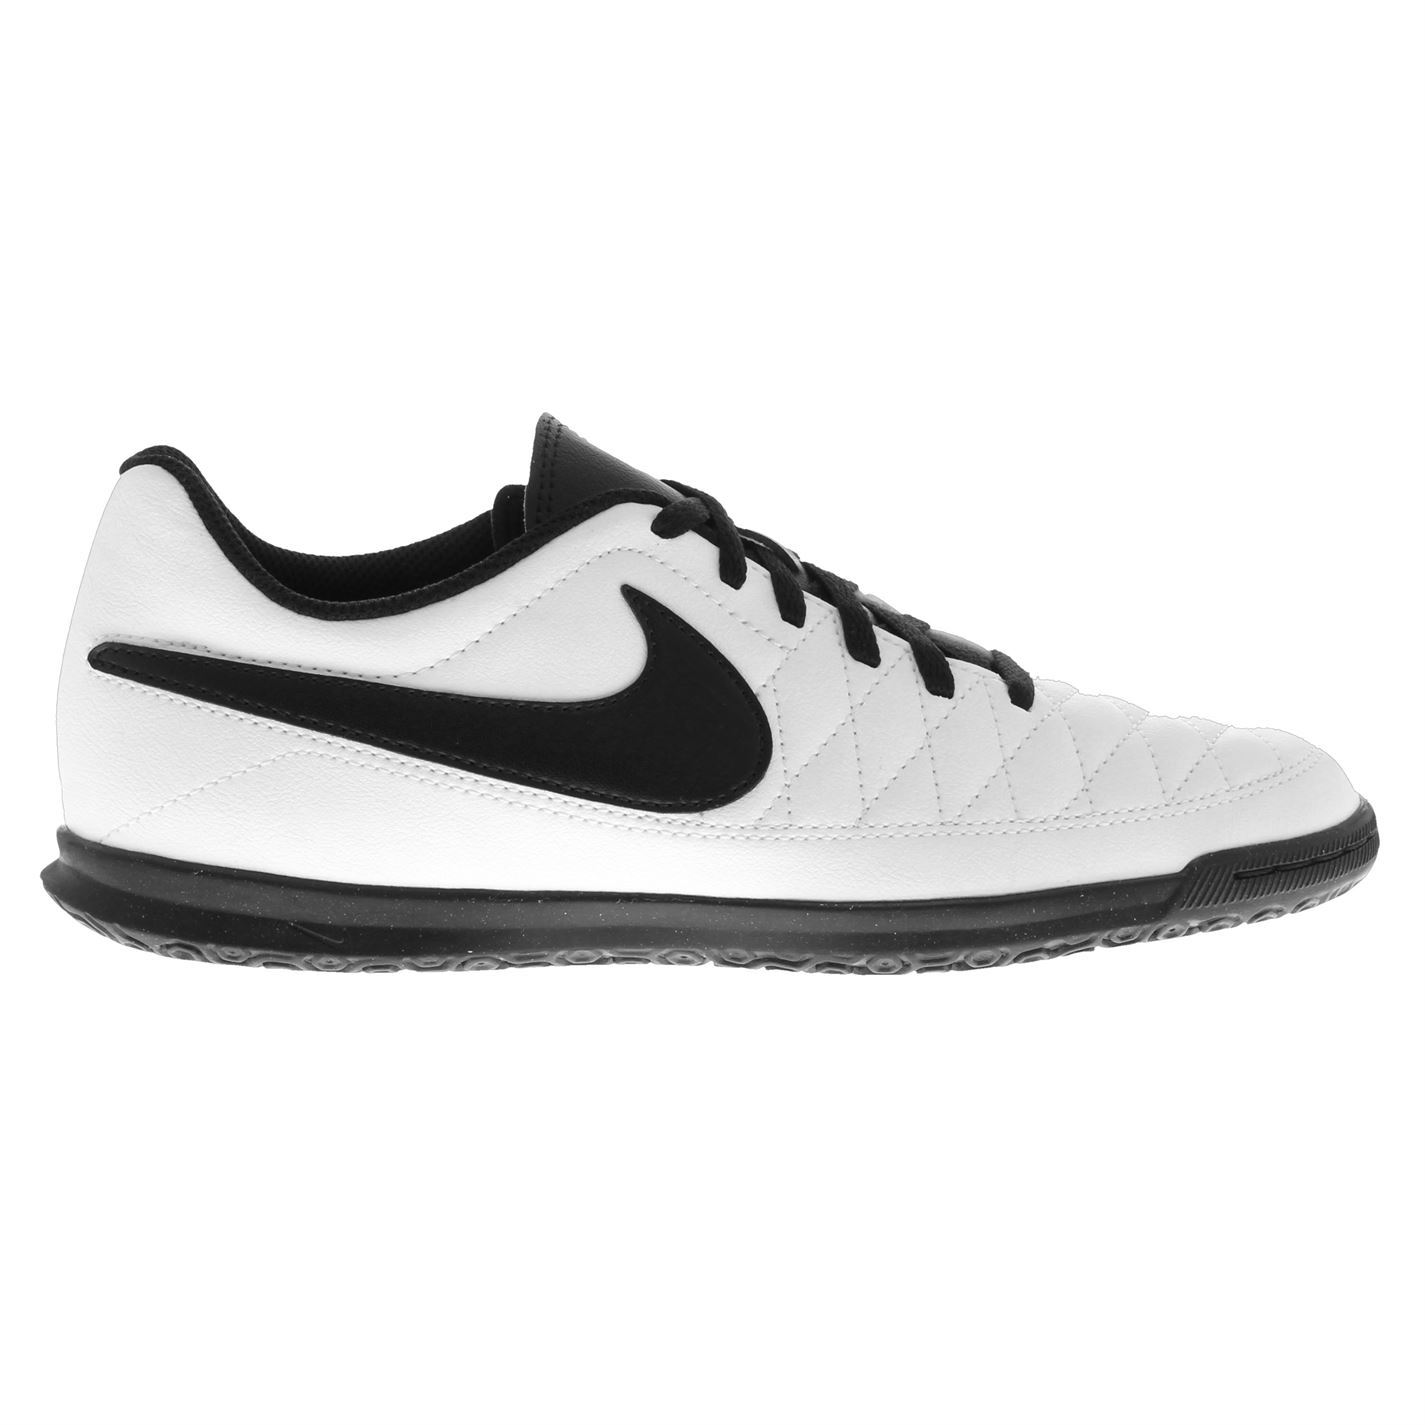 Nike-majestry-Indoor-Football-Baskets-Pour-Homme-Football-Futsal-Chaussures-Baskets-Bottes miniature 30